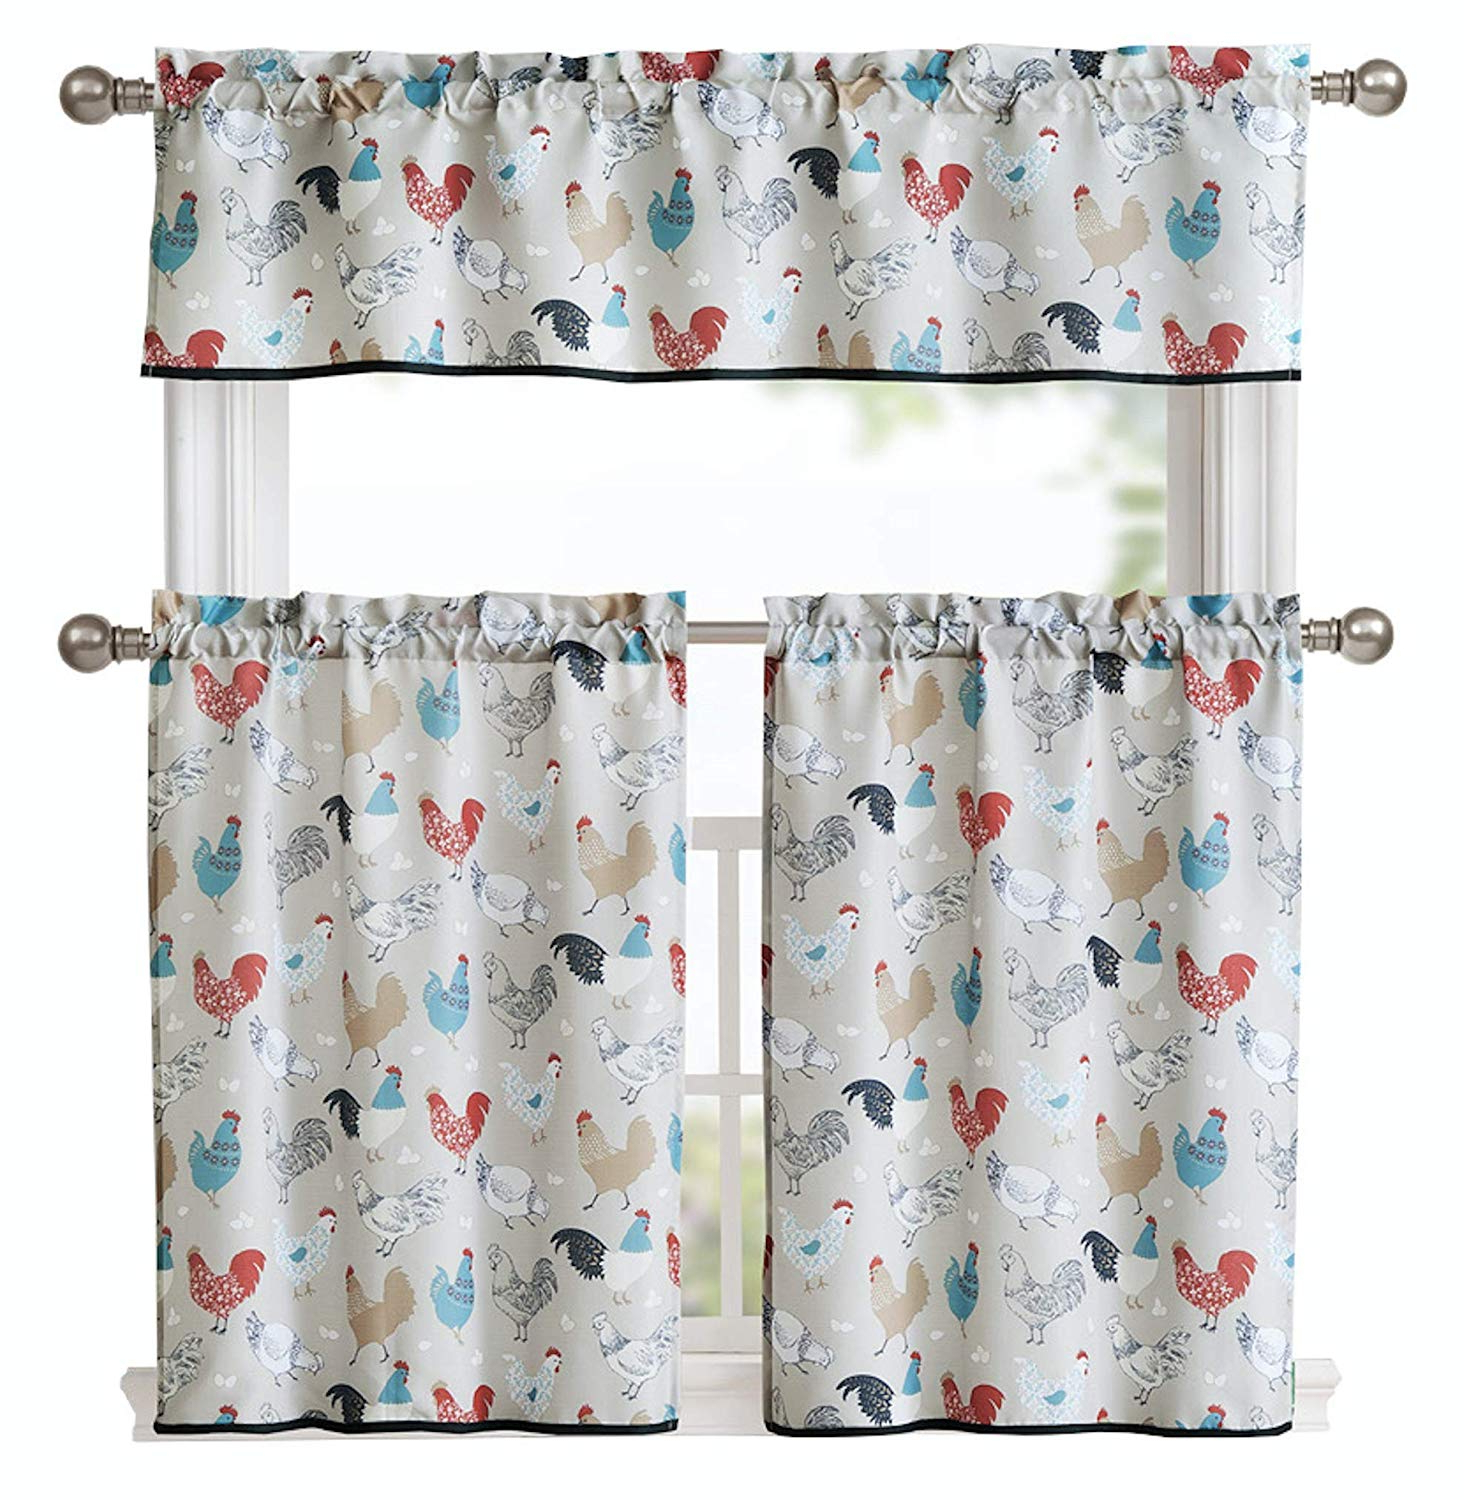 Geometric Print Microfiber 3 Piece Kitchen Curtain Valance And Tiers Sets With Widely Used Goodgram Multi Rooster Complete 3 Pc Kitchen Curtain Tier & Valance Set – Assorted Colors … (neutral) (View 4 of 20)